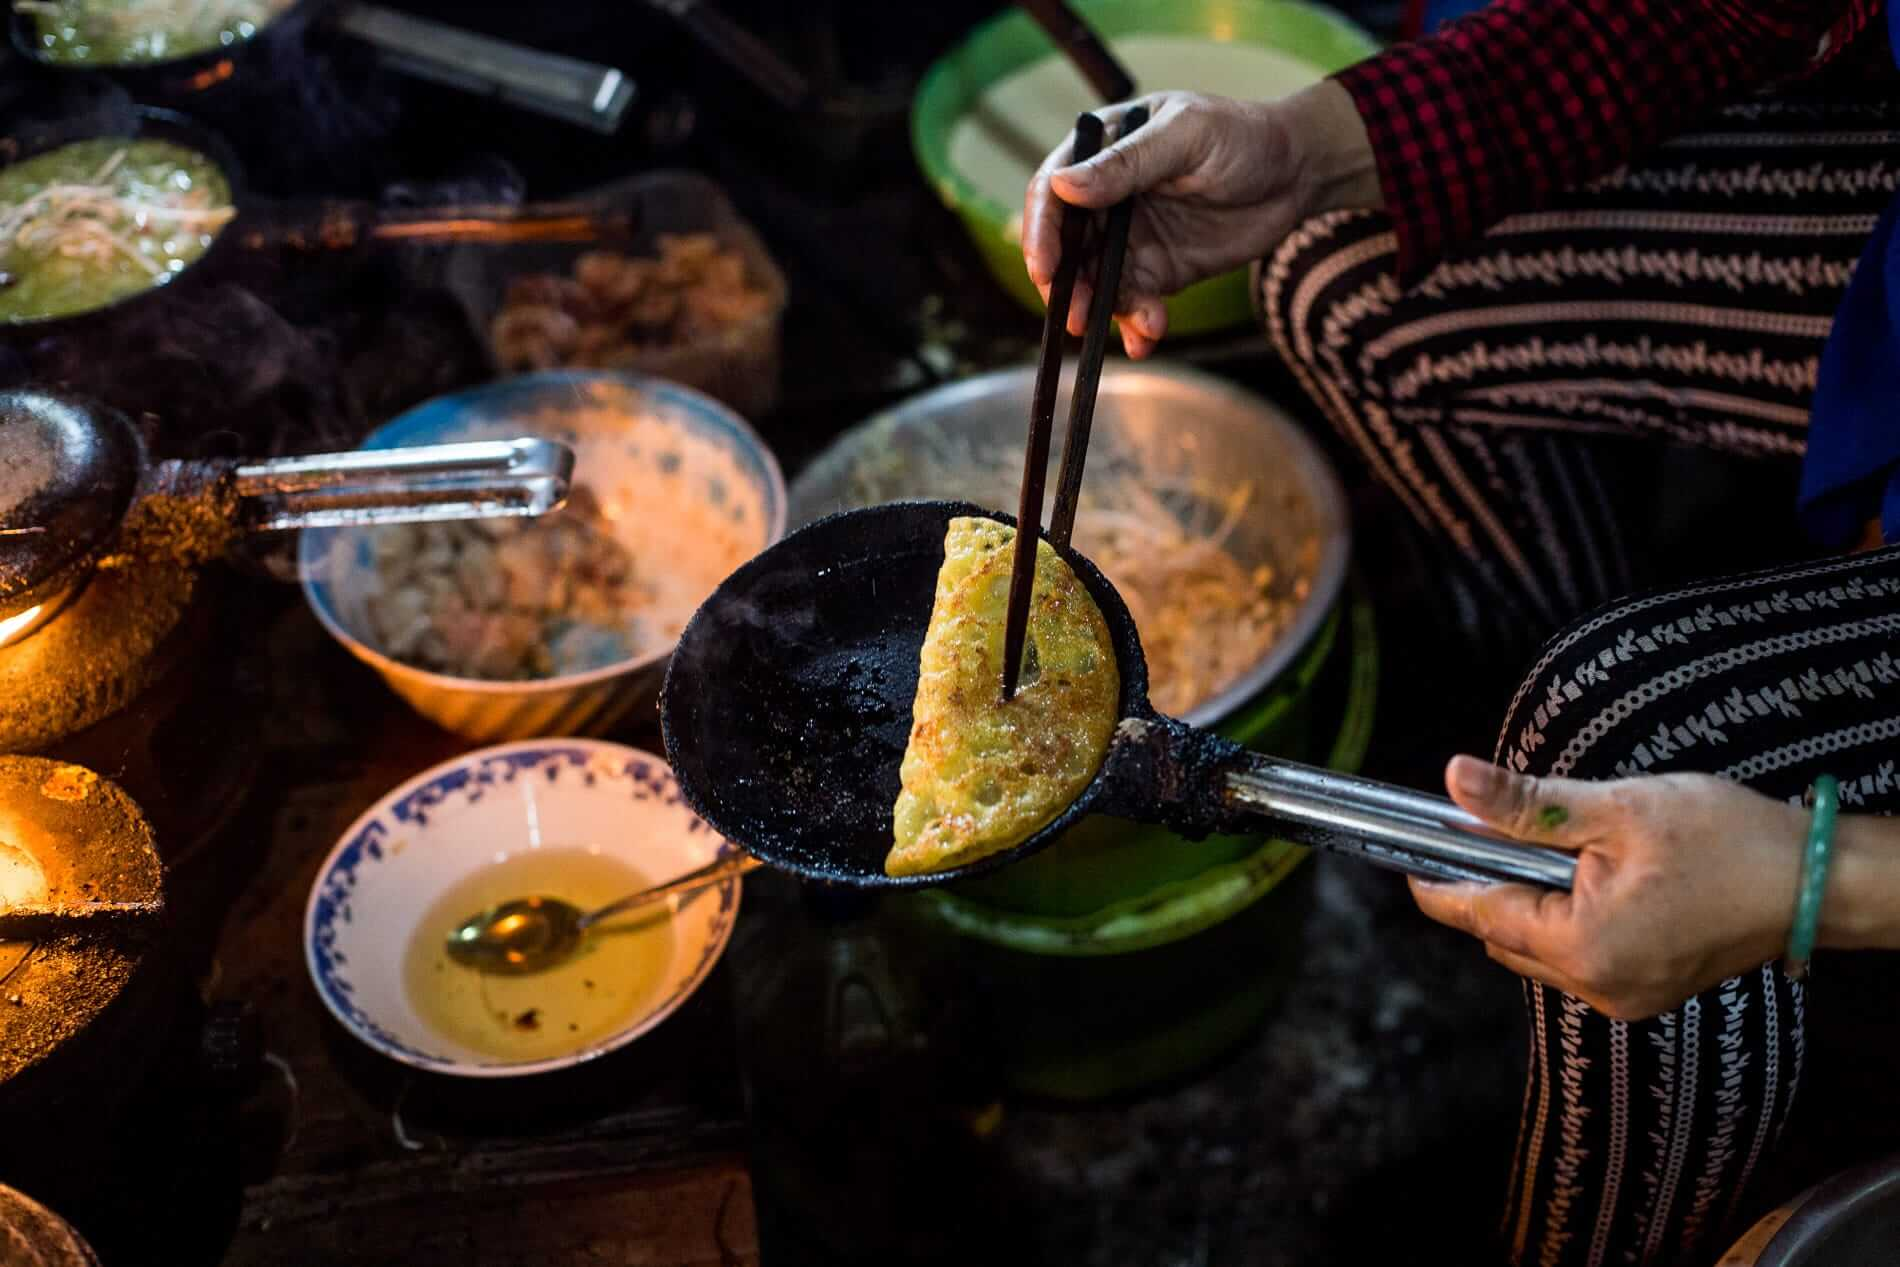 Banh Xeo is cooked at a market stall